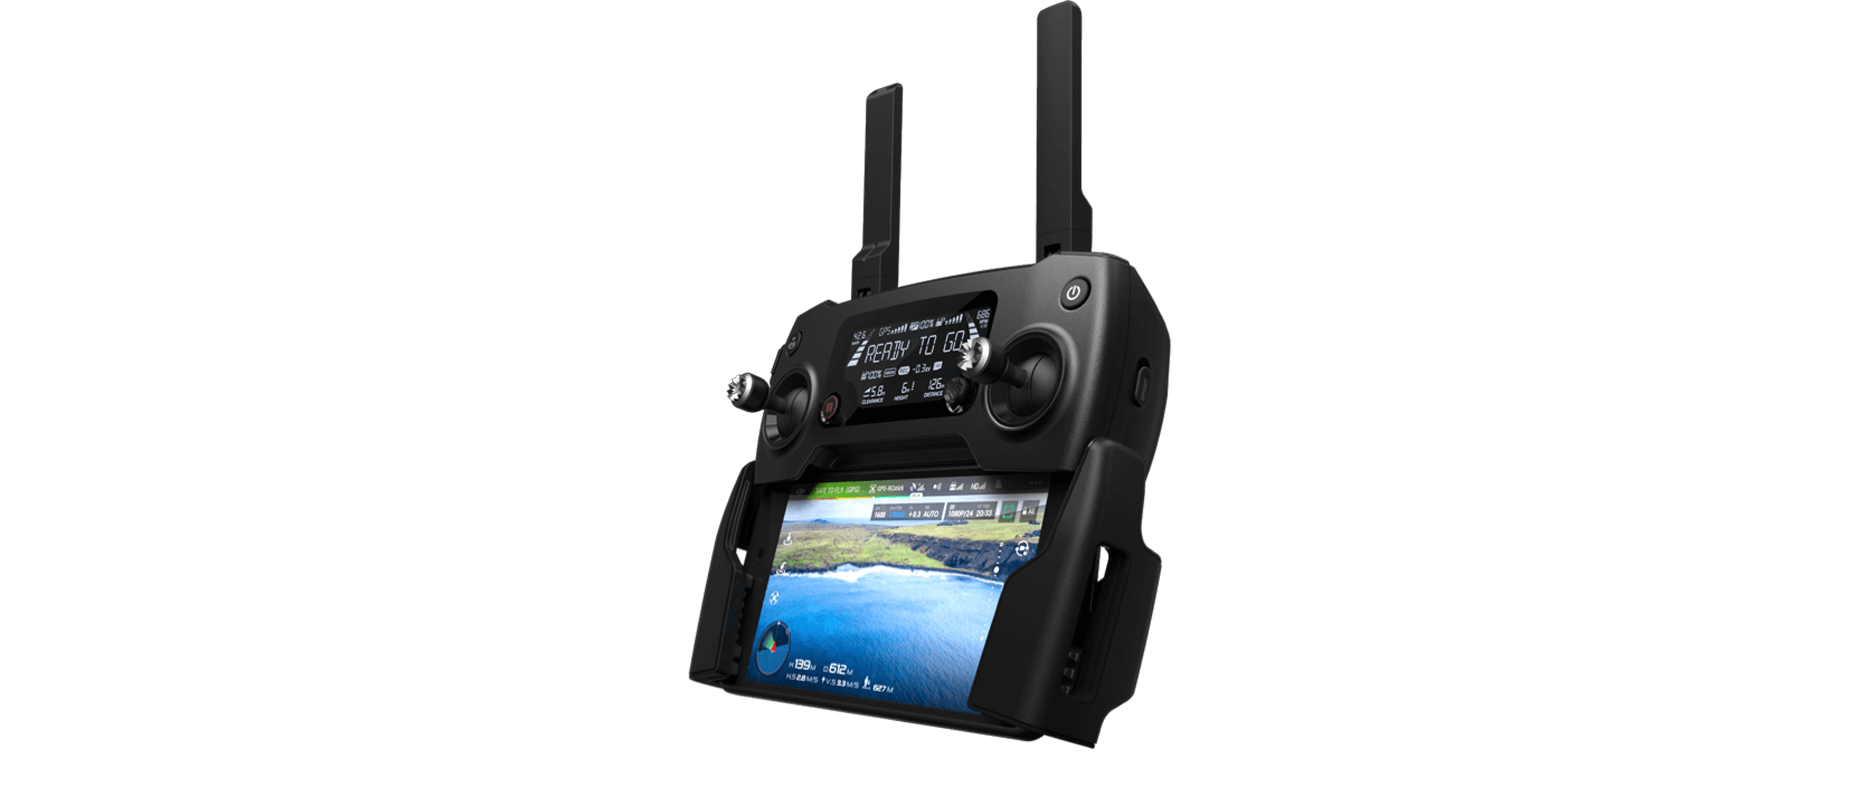 http://www1.djicdn.com/assets/images/products/mavic/s1-img-v2/remote_2-1c8a9741334988c9b5e751633a2cff78.png